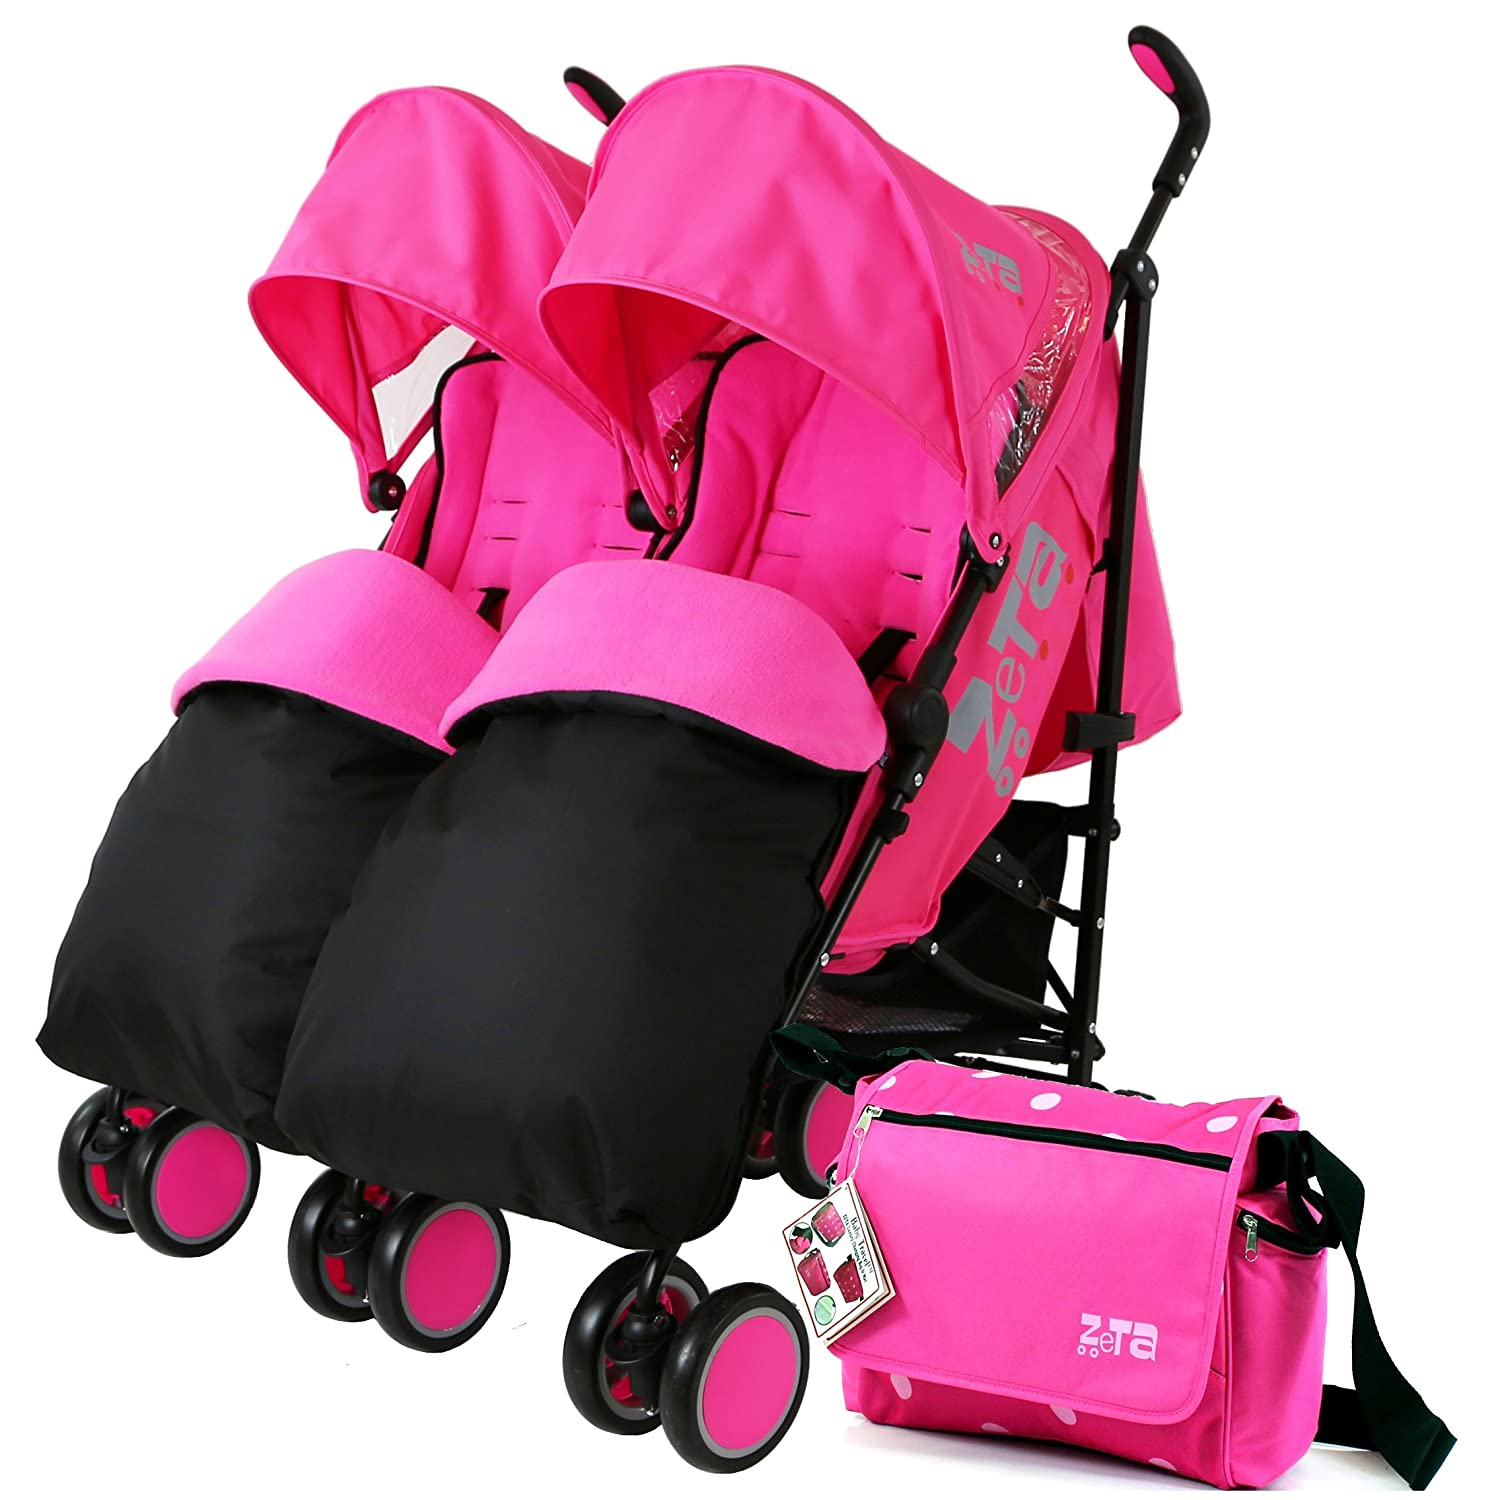 Zeta Citi TWIN Stroller Buggy Pushchair - Raspberry Pink Double Stroller Complete With FootMuffs And Bag Baby TravelTM